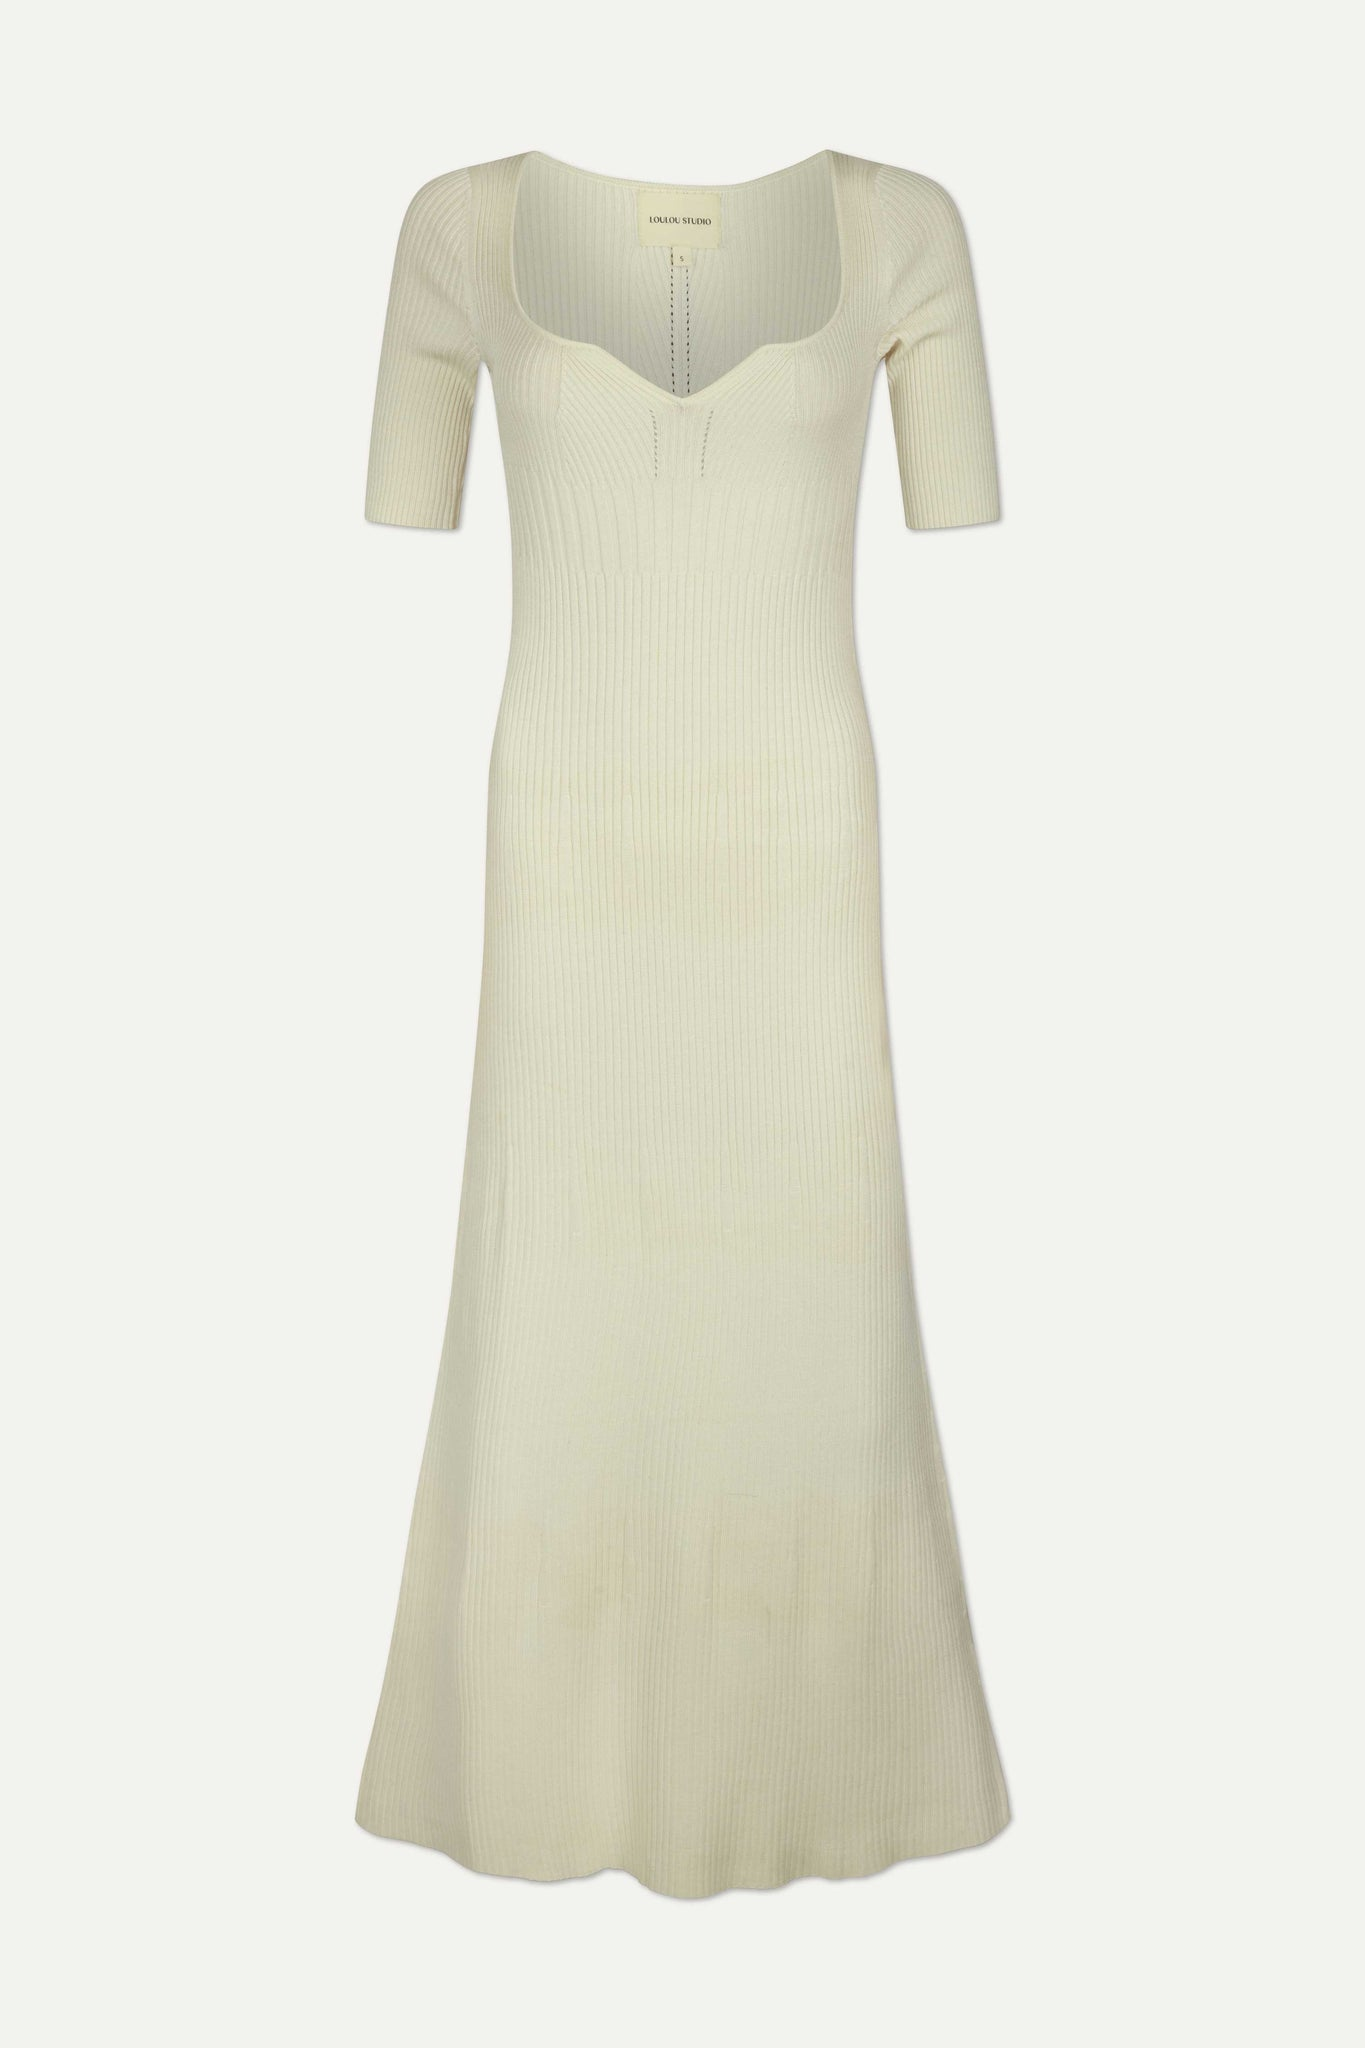 CHETLAT DRESS BY LOULOU STUDIO IN IVORY